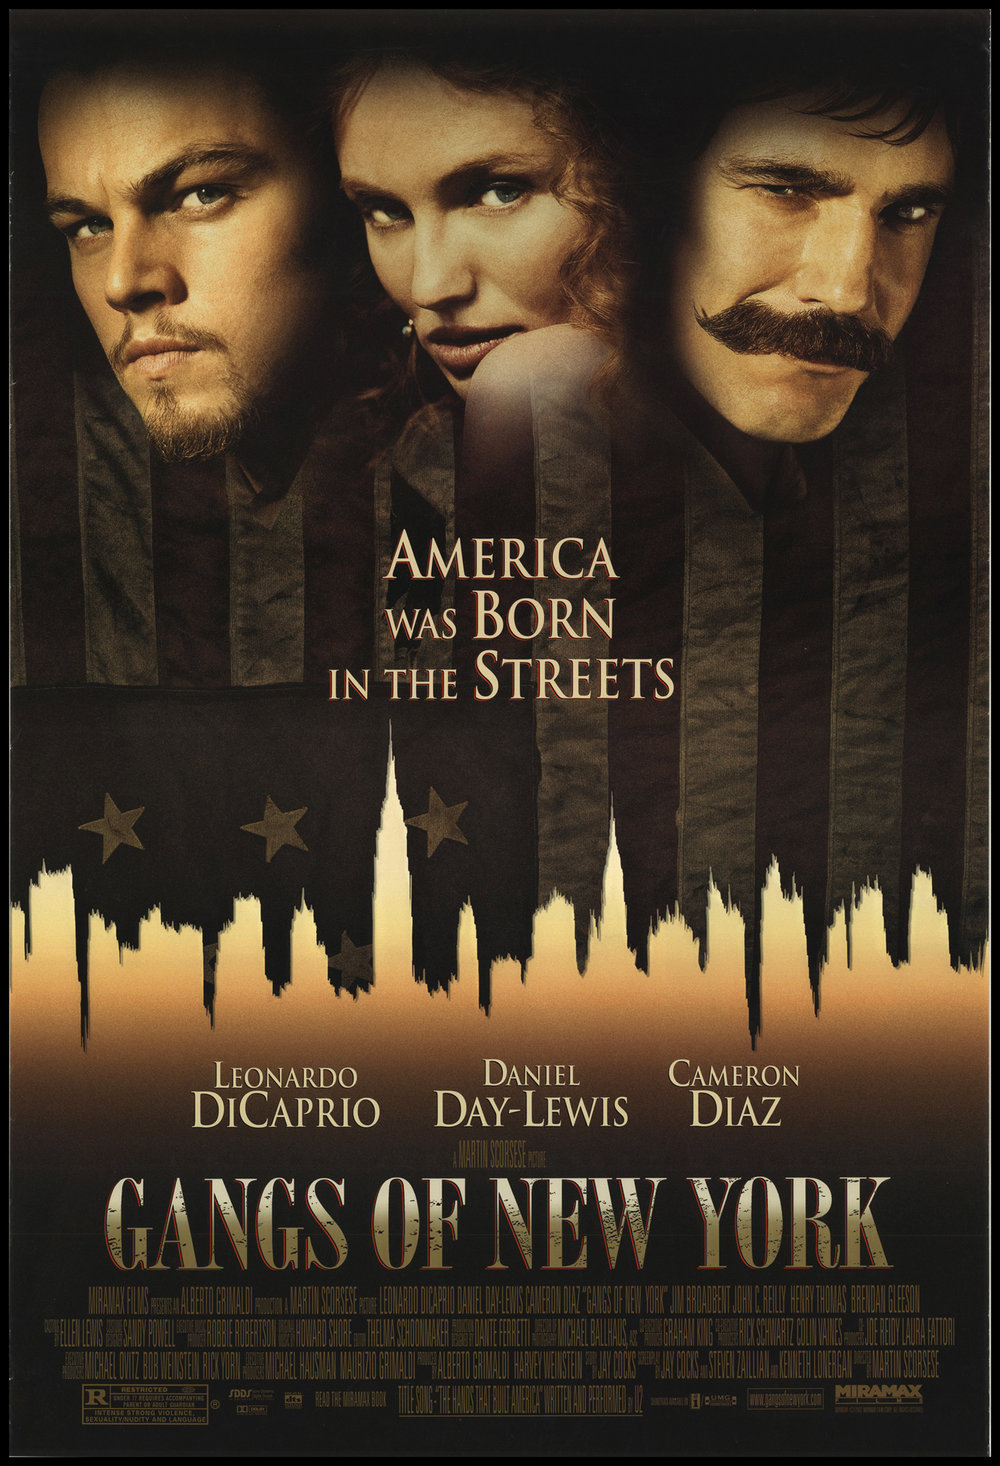 Gangs of New York, 2000